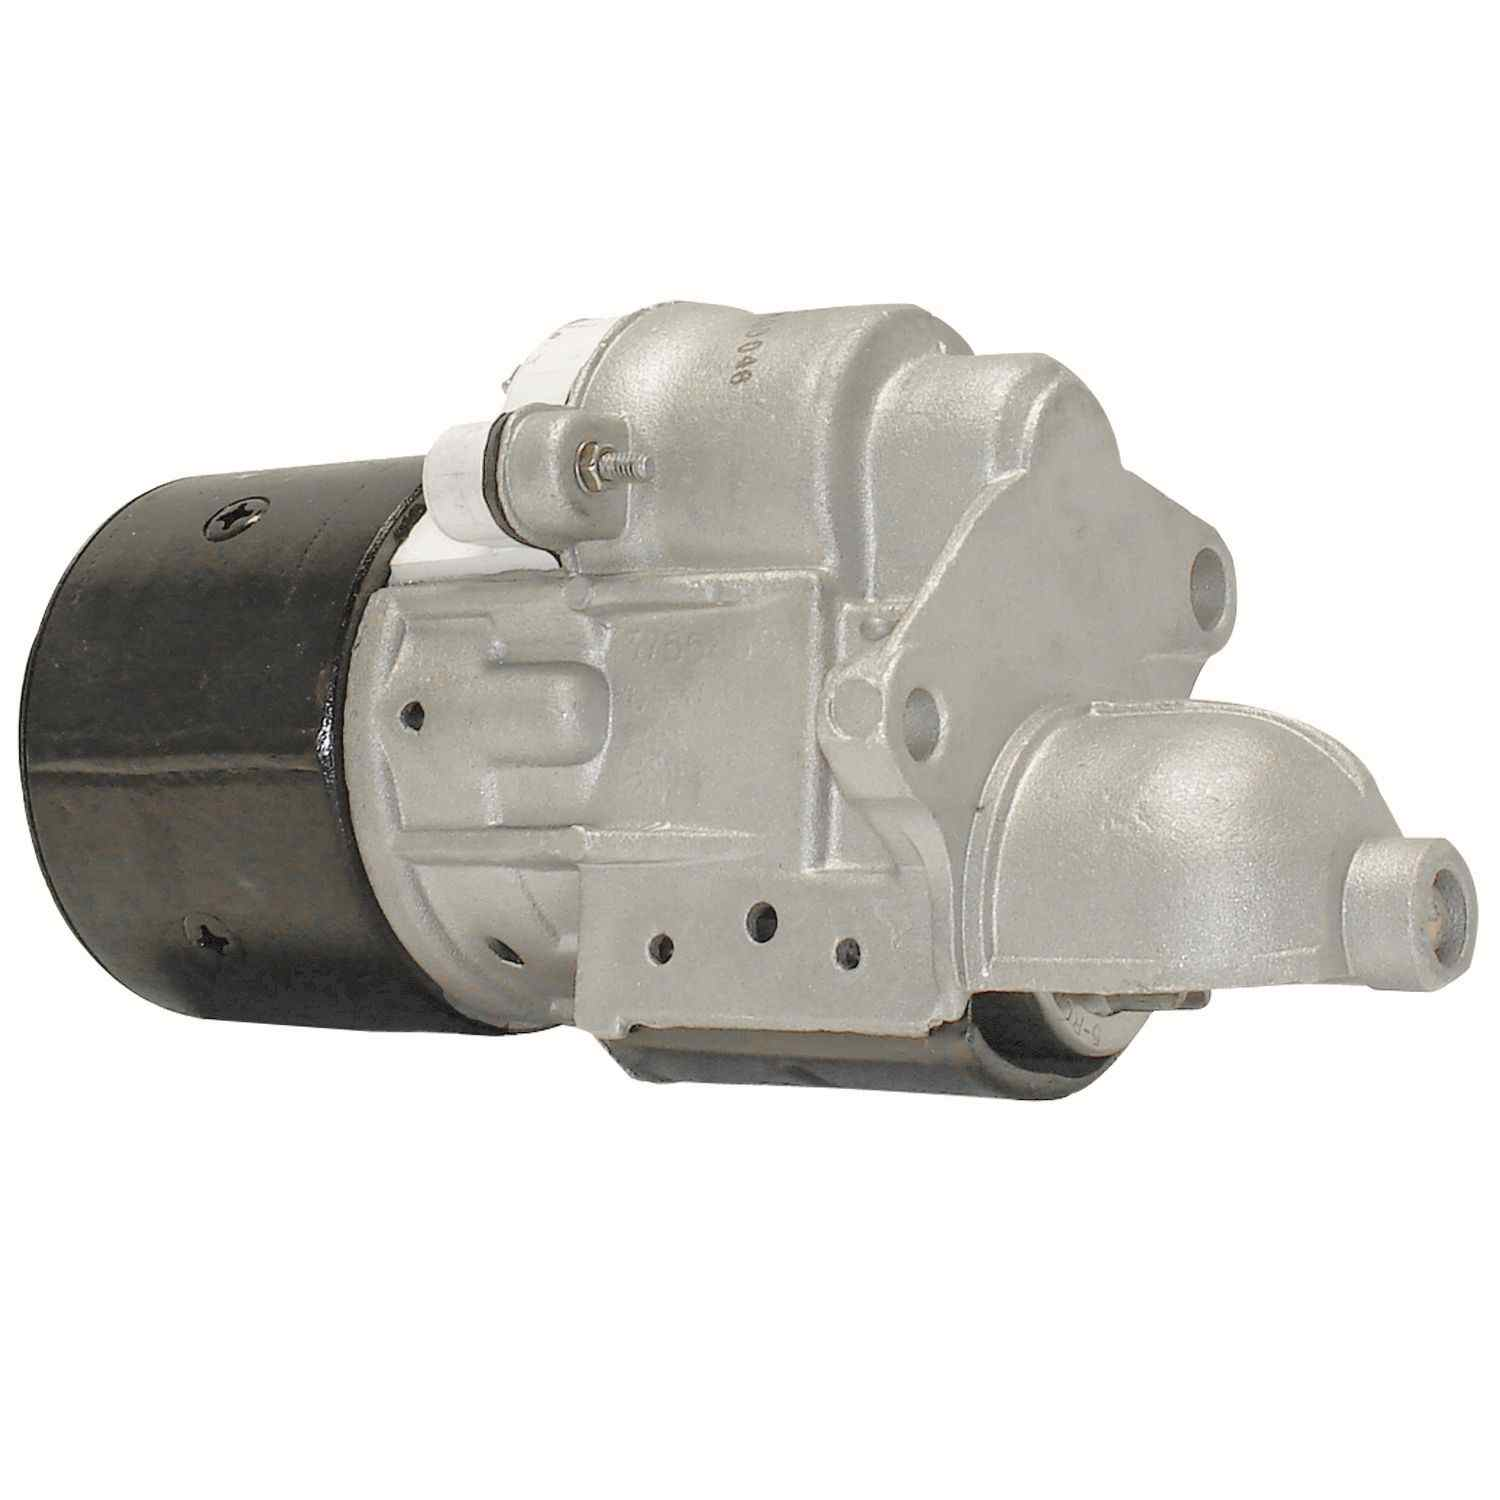 ACDELCO GOLD/PROFESSIONAL - Reman Starter Motor - DCC 336-1043